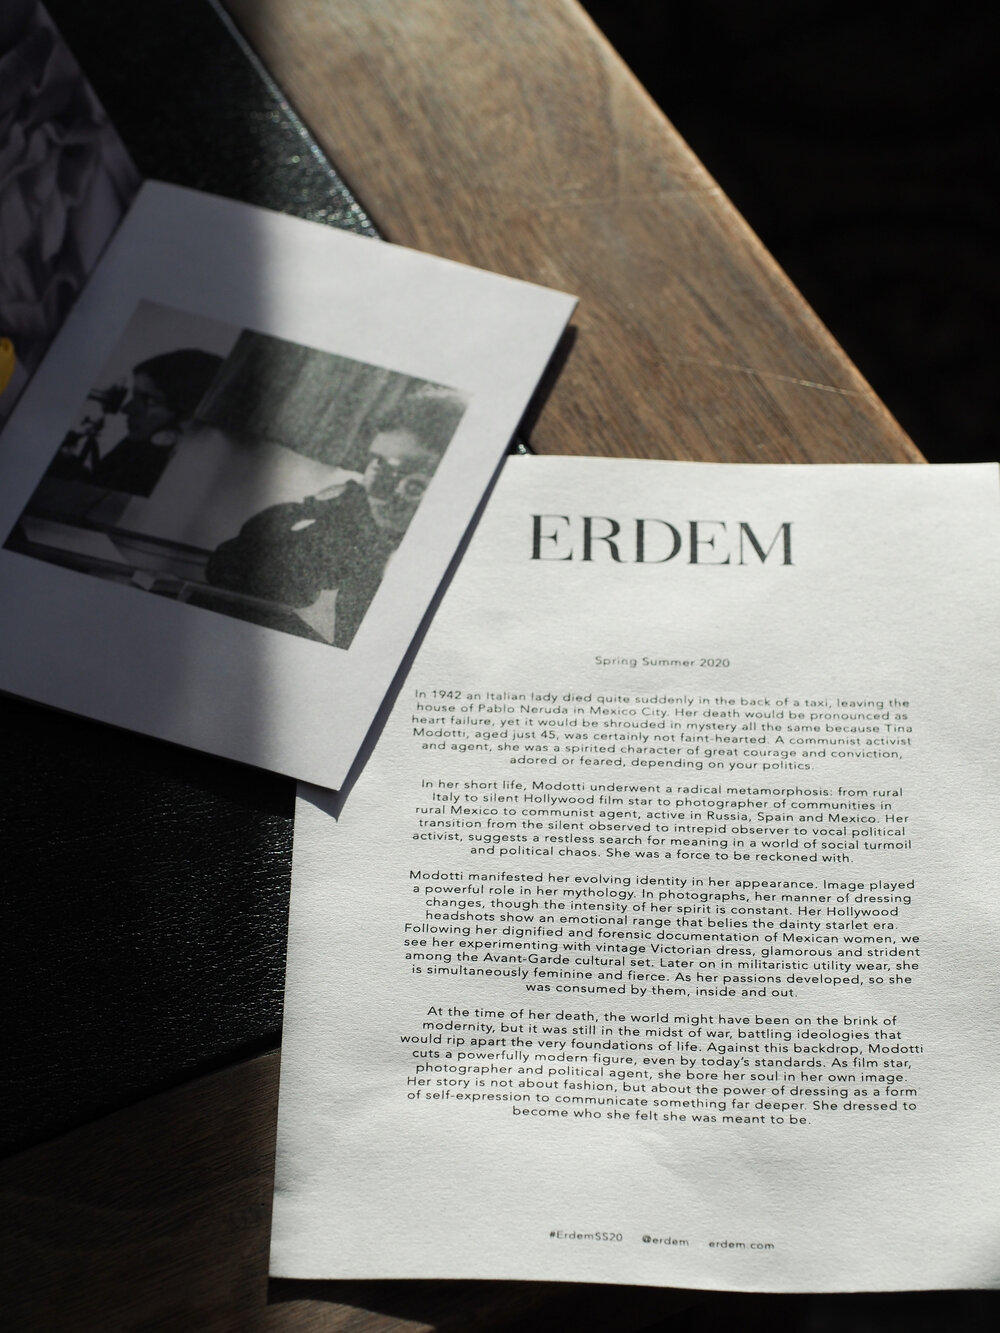 Erdem write-up.jpg